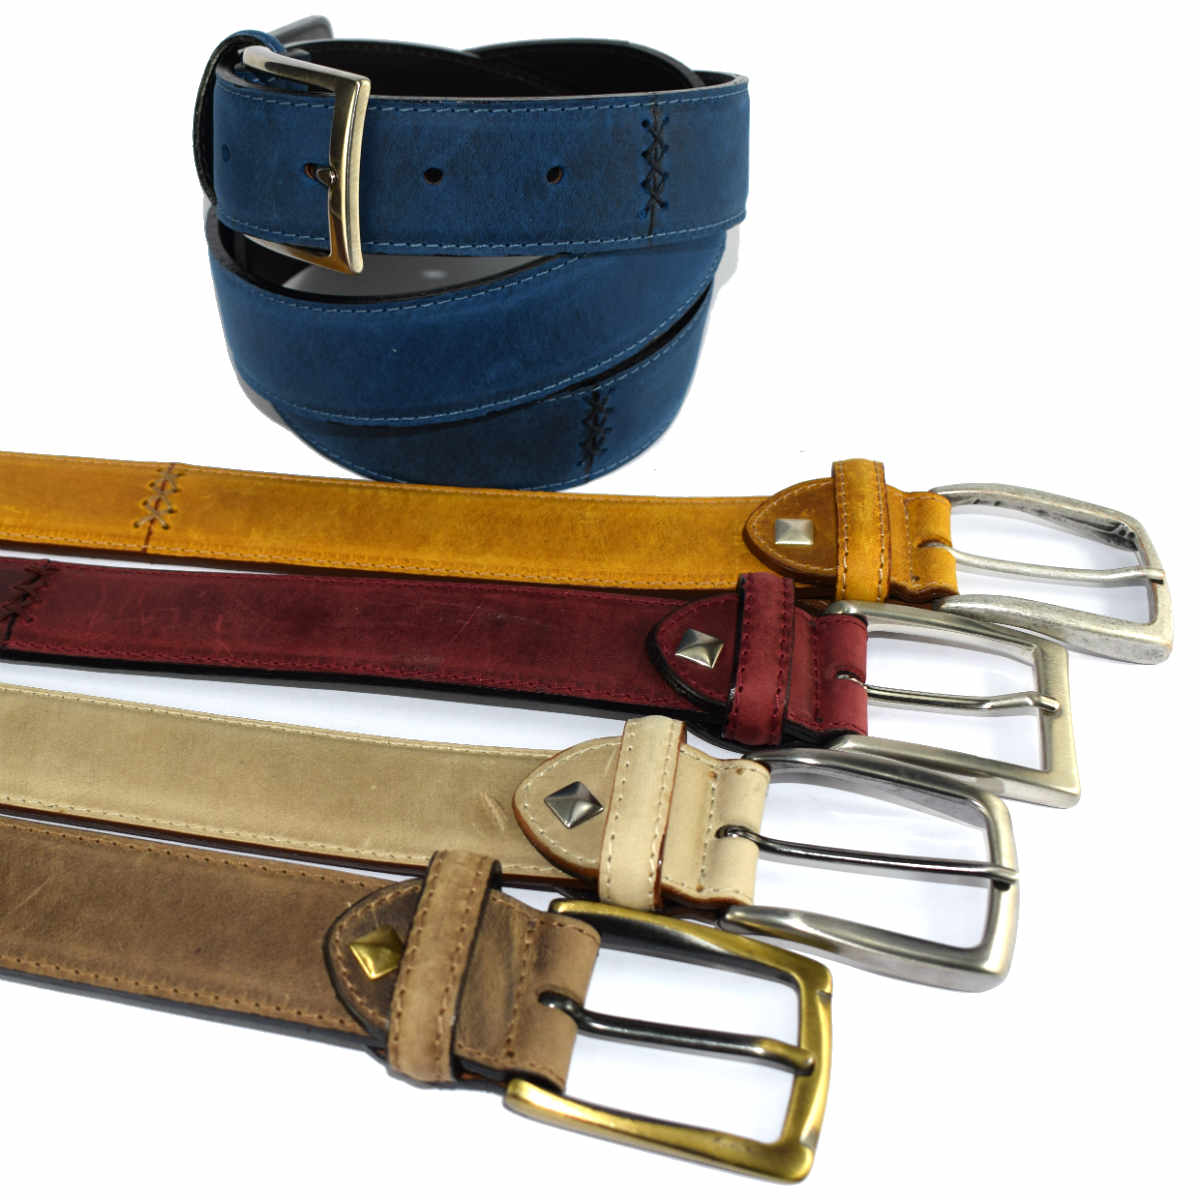 6335 GREASED LEATHER BELT by Bottega Fiorentina